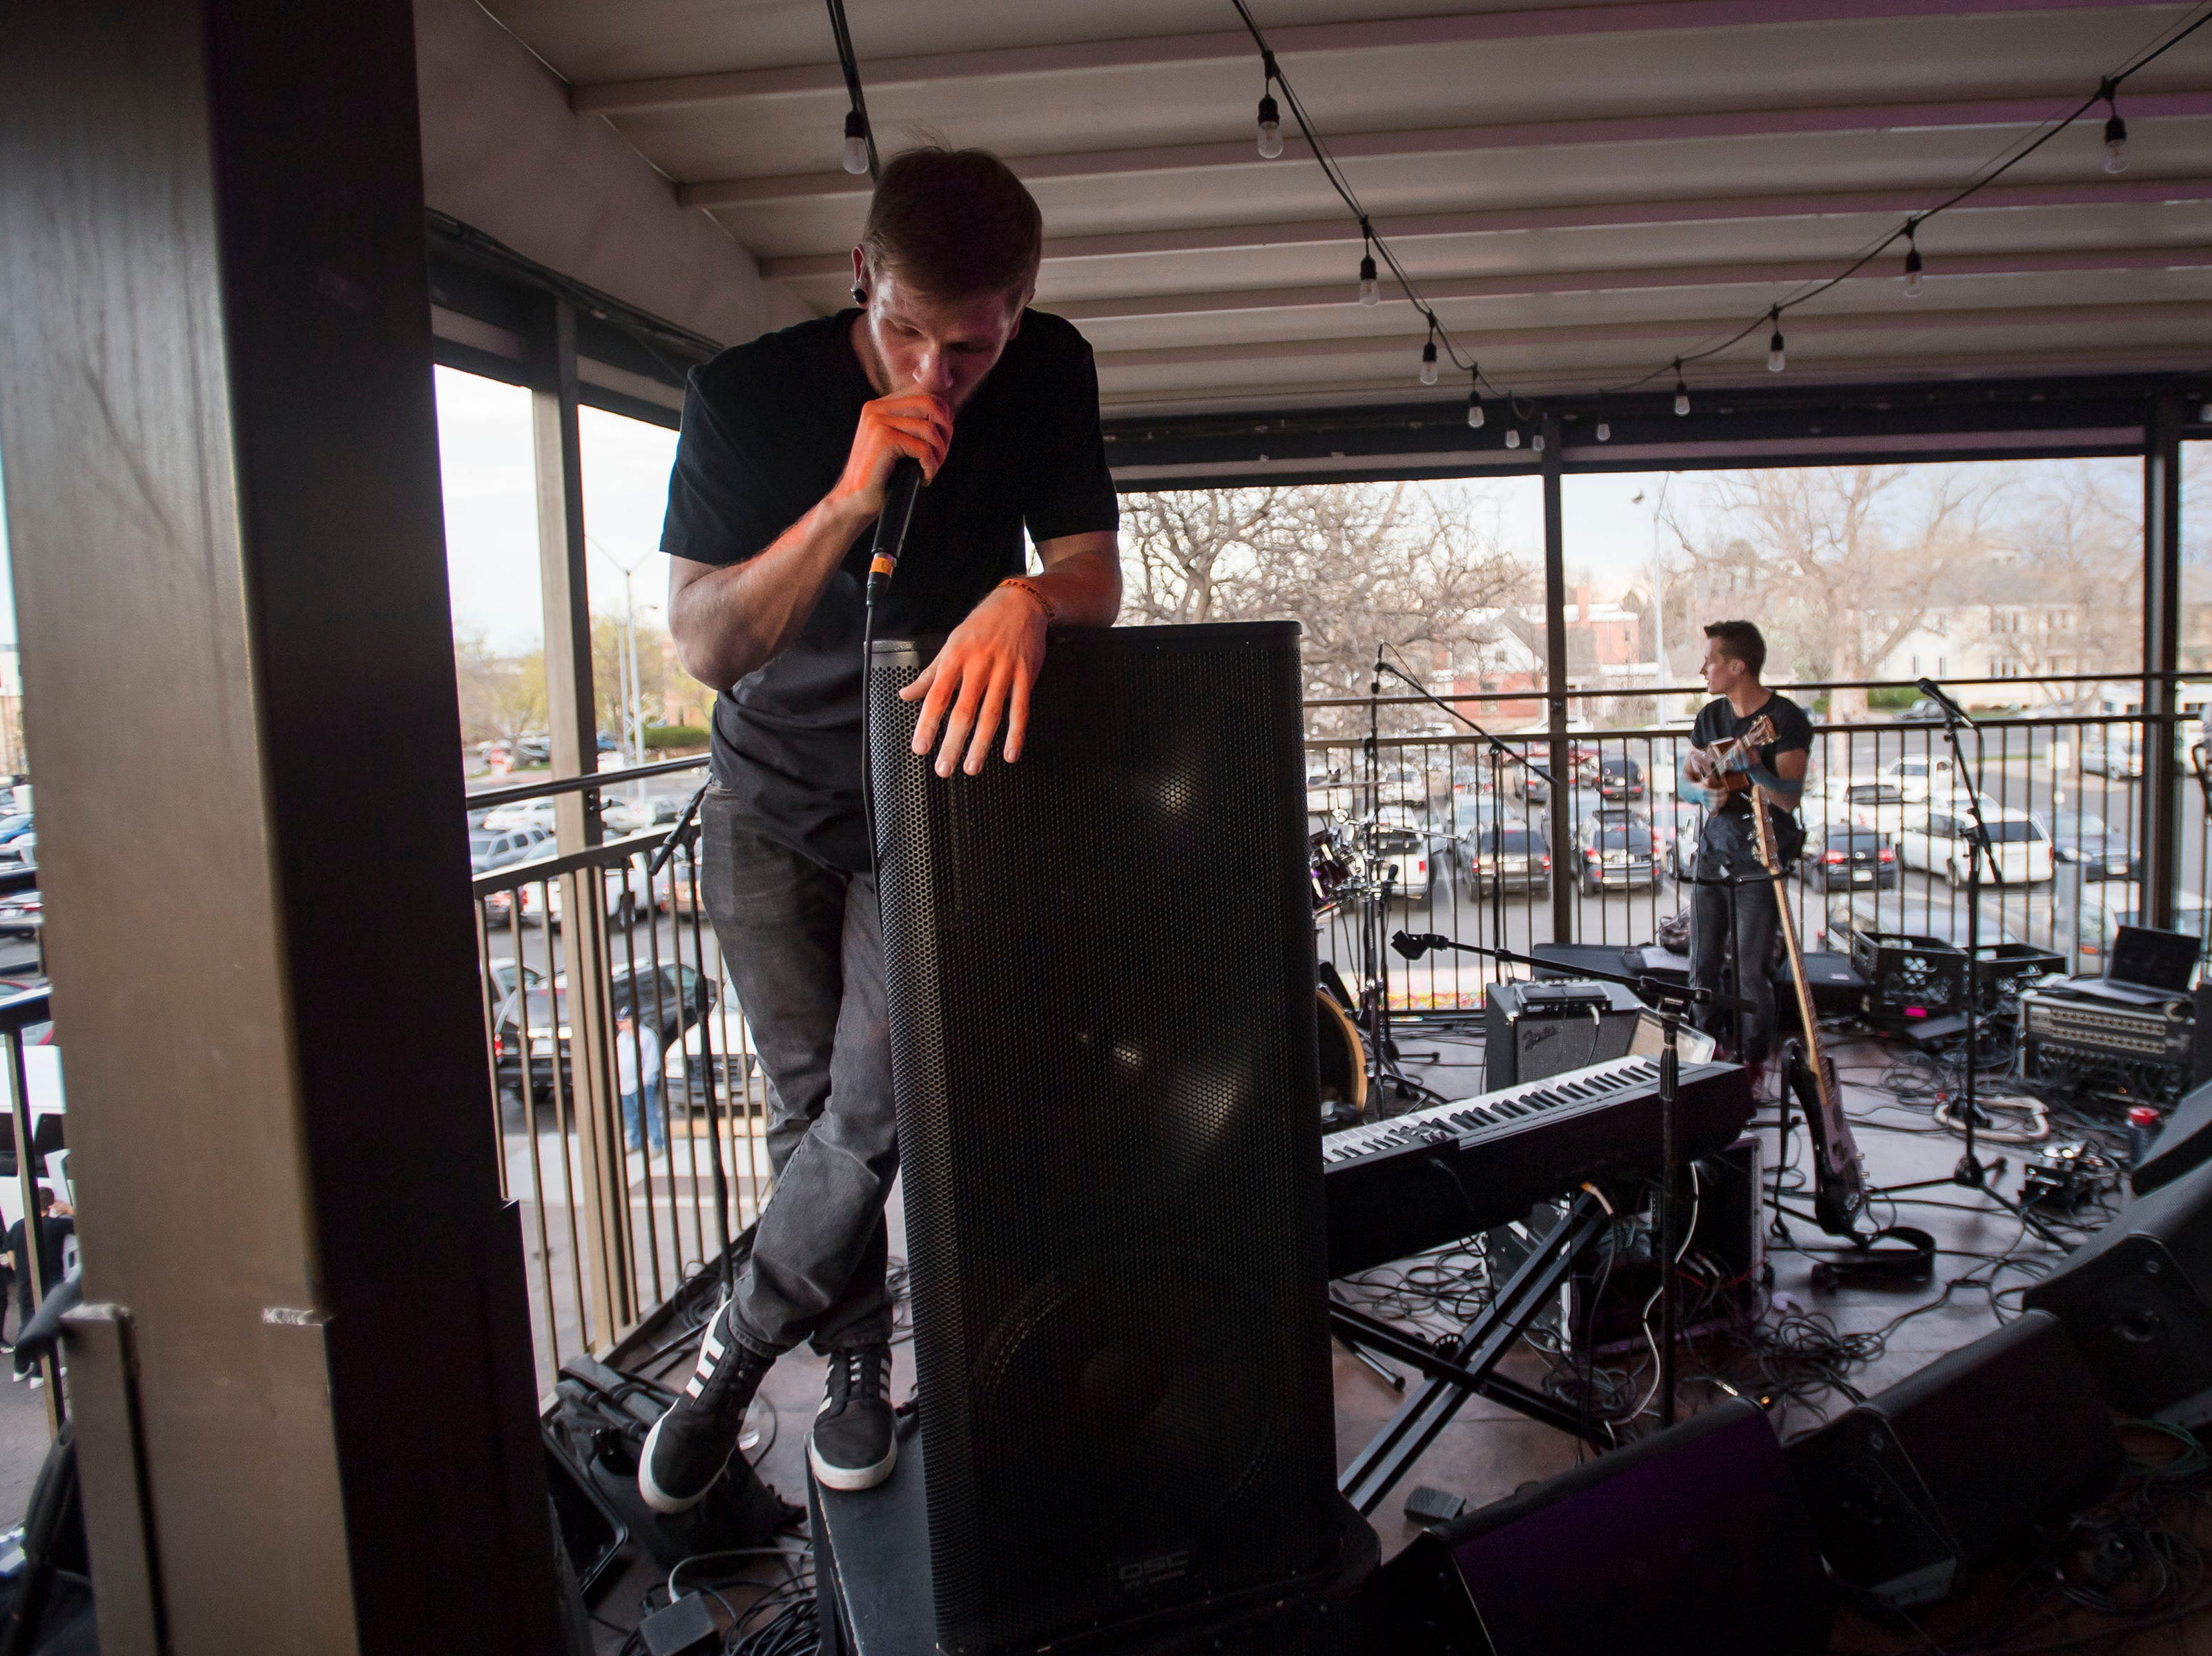 Glass Cases perform at Tony's bar & Rooftop during the FoCoMX XI music festival on Friday, April 26, 2019, in Fort Collins, Colo.